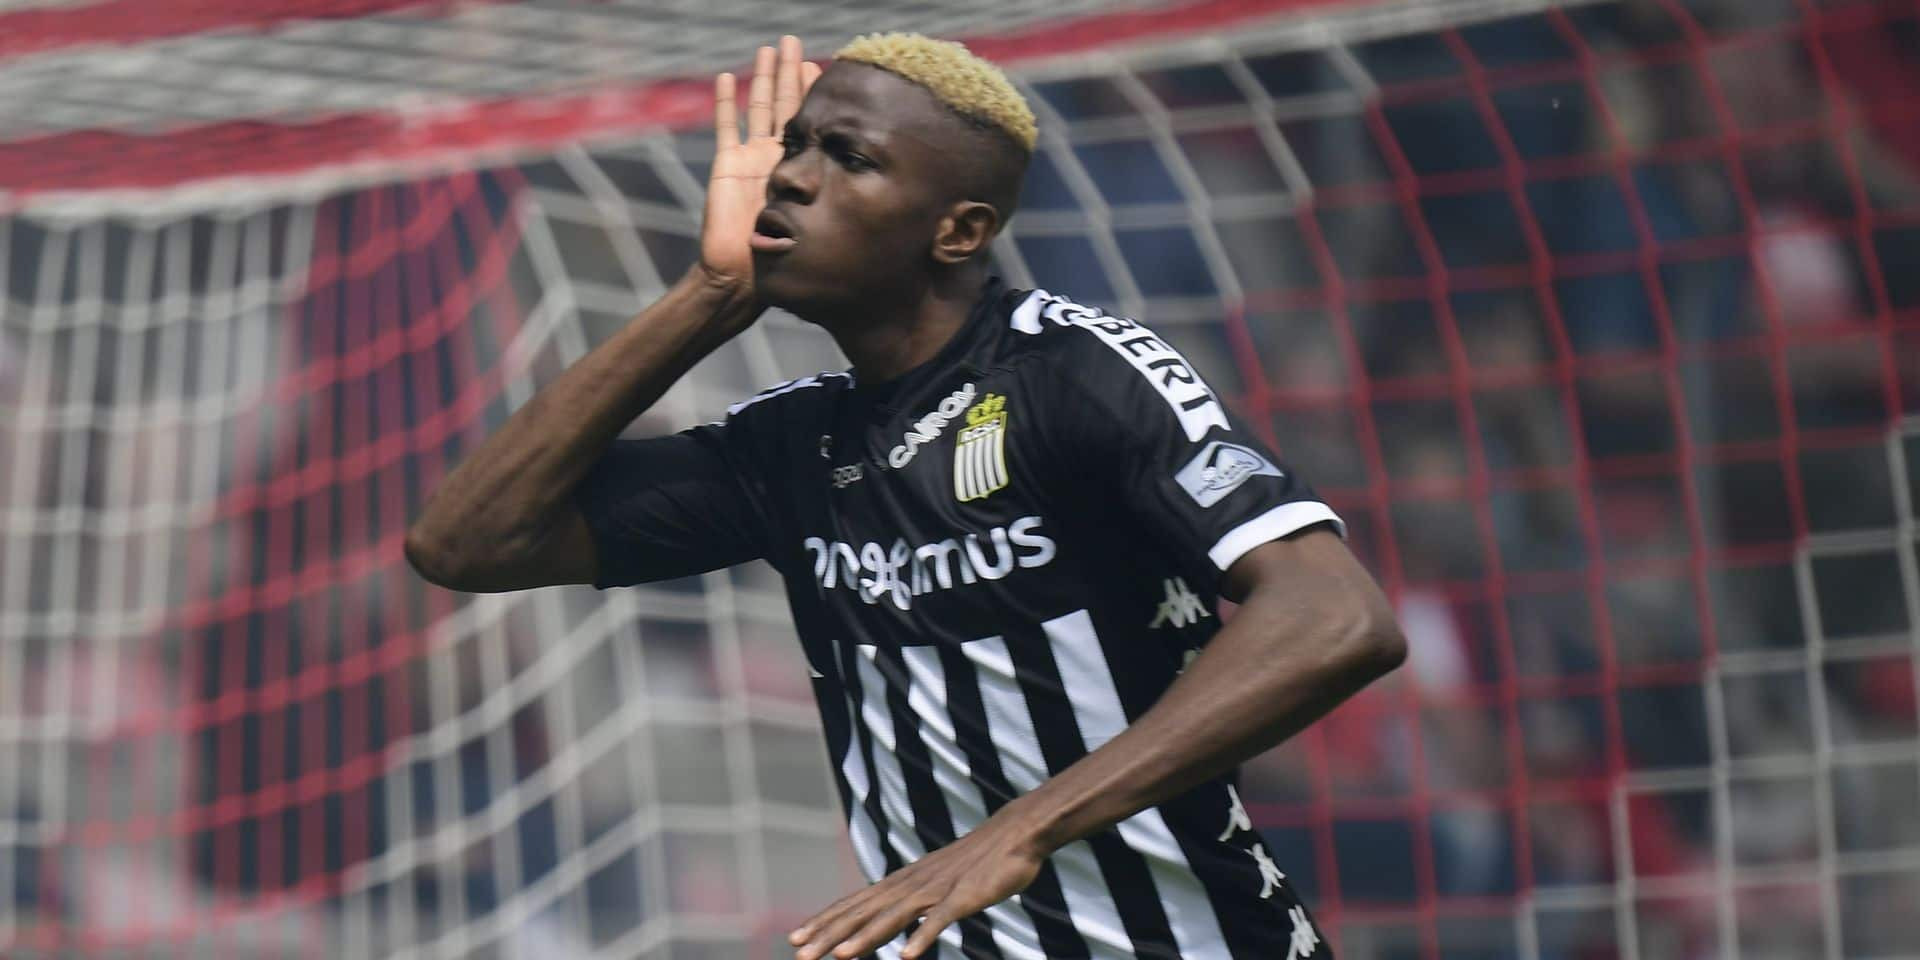 ANTWERPEN, BELGIUM - MAY 26 : Victor Osimhen forward of Charleroi celebrates scoring a goal during the Jupiler Pro League Europa League Play offs knockout match between Royal Antwerp FC and Sporting Charleroi on May 26, 2019 in Antwerpen, Belgium, 26/05/2019 ( Photo by {Byline:Pc} / Photonews